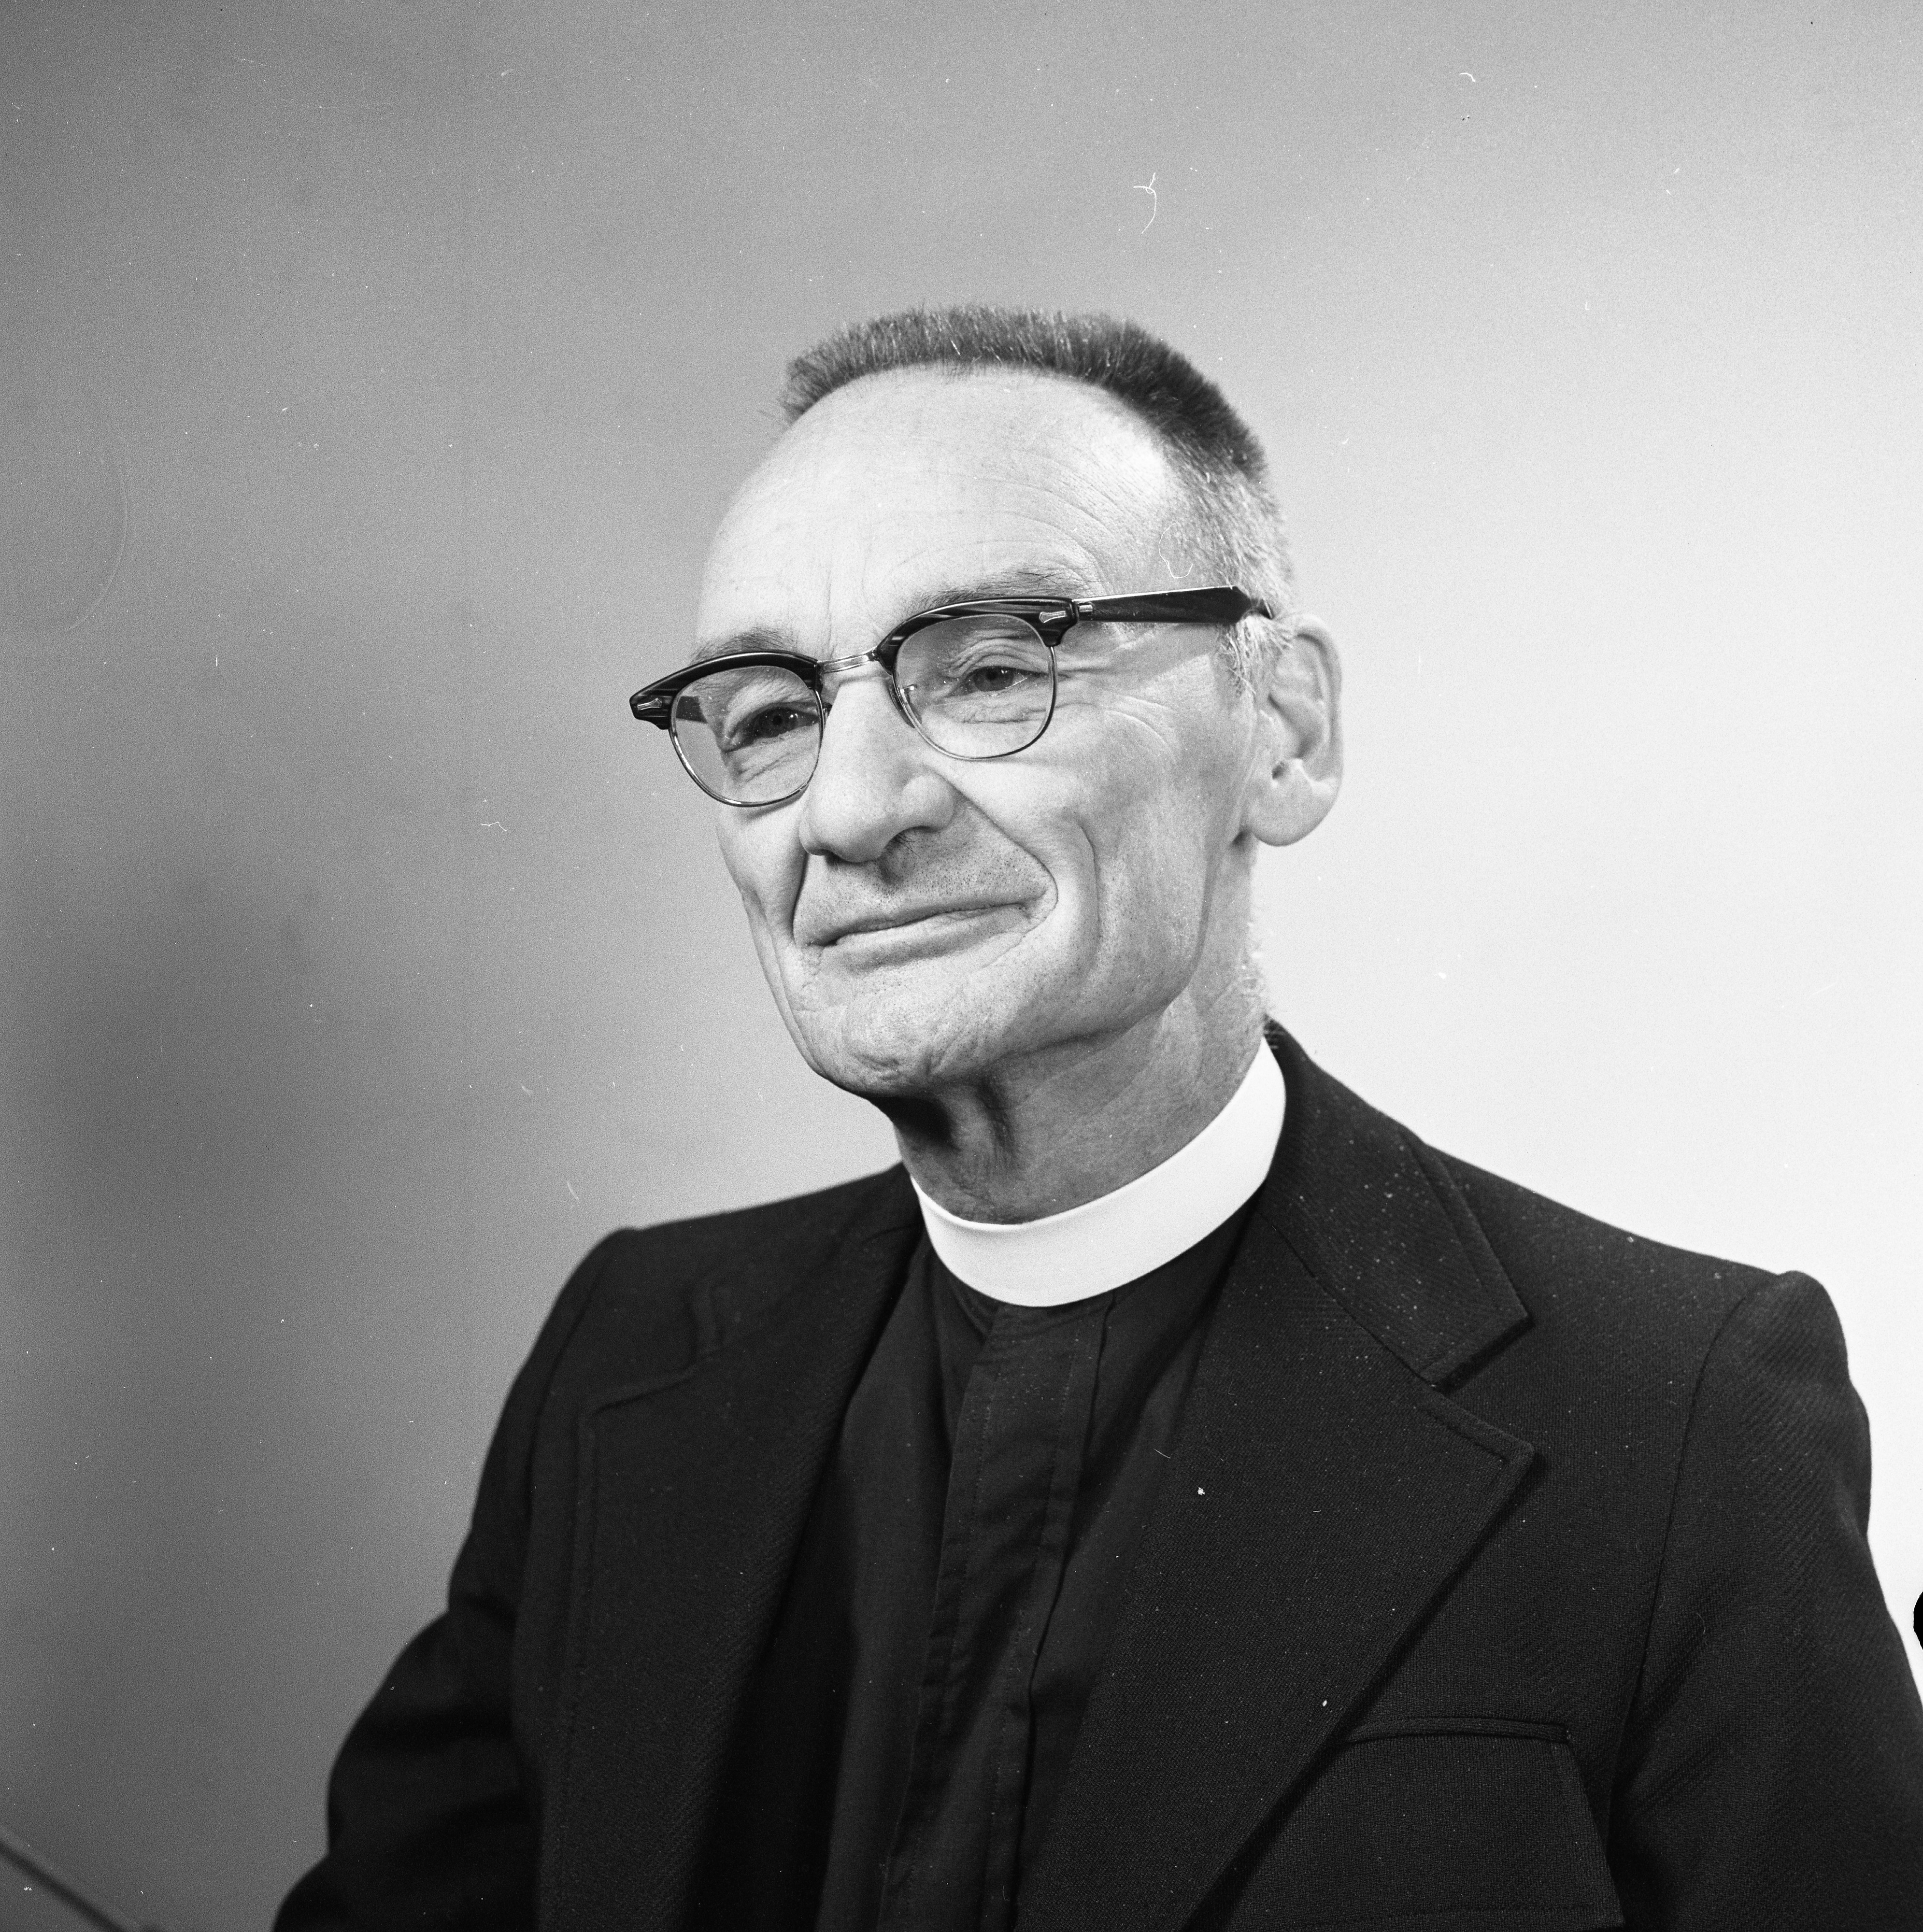 St. Andrew's Episcopal Church Rector Rev. Gordon M. Jones Jr., October 1973 image